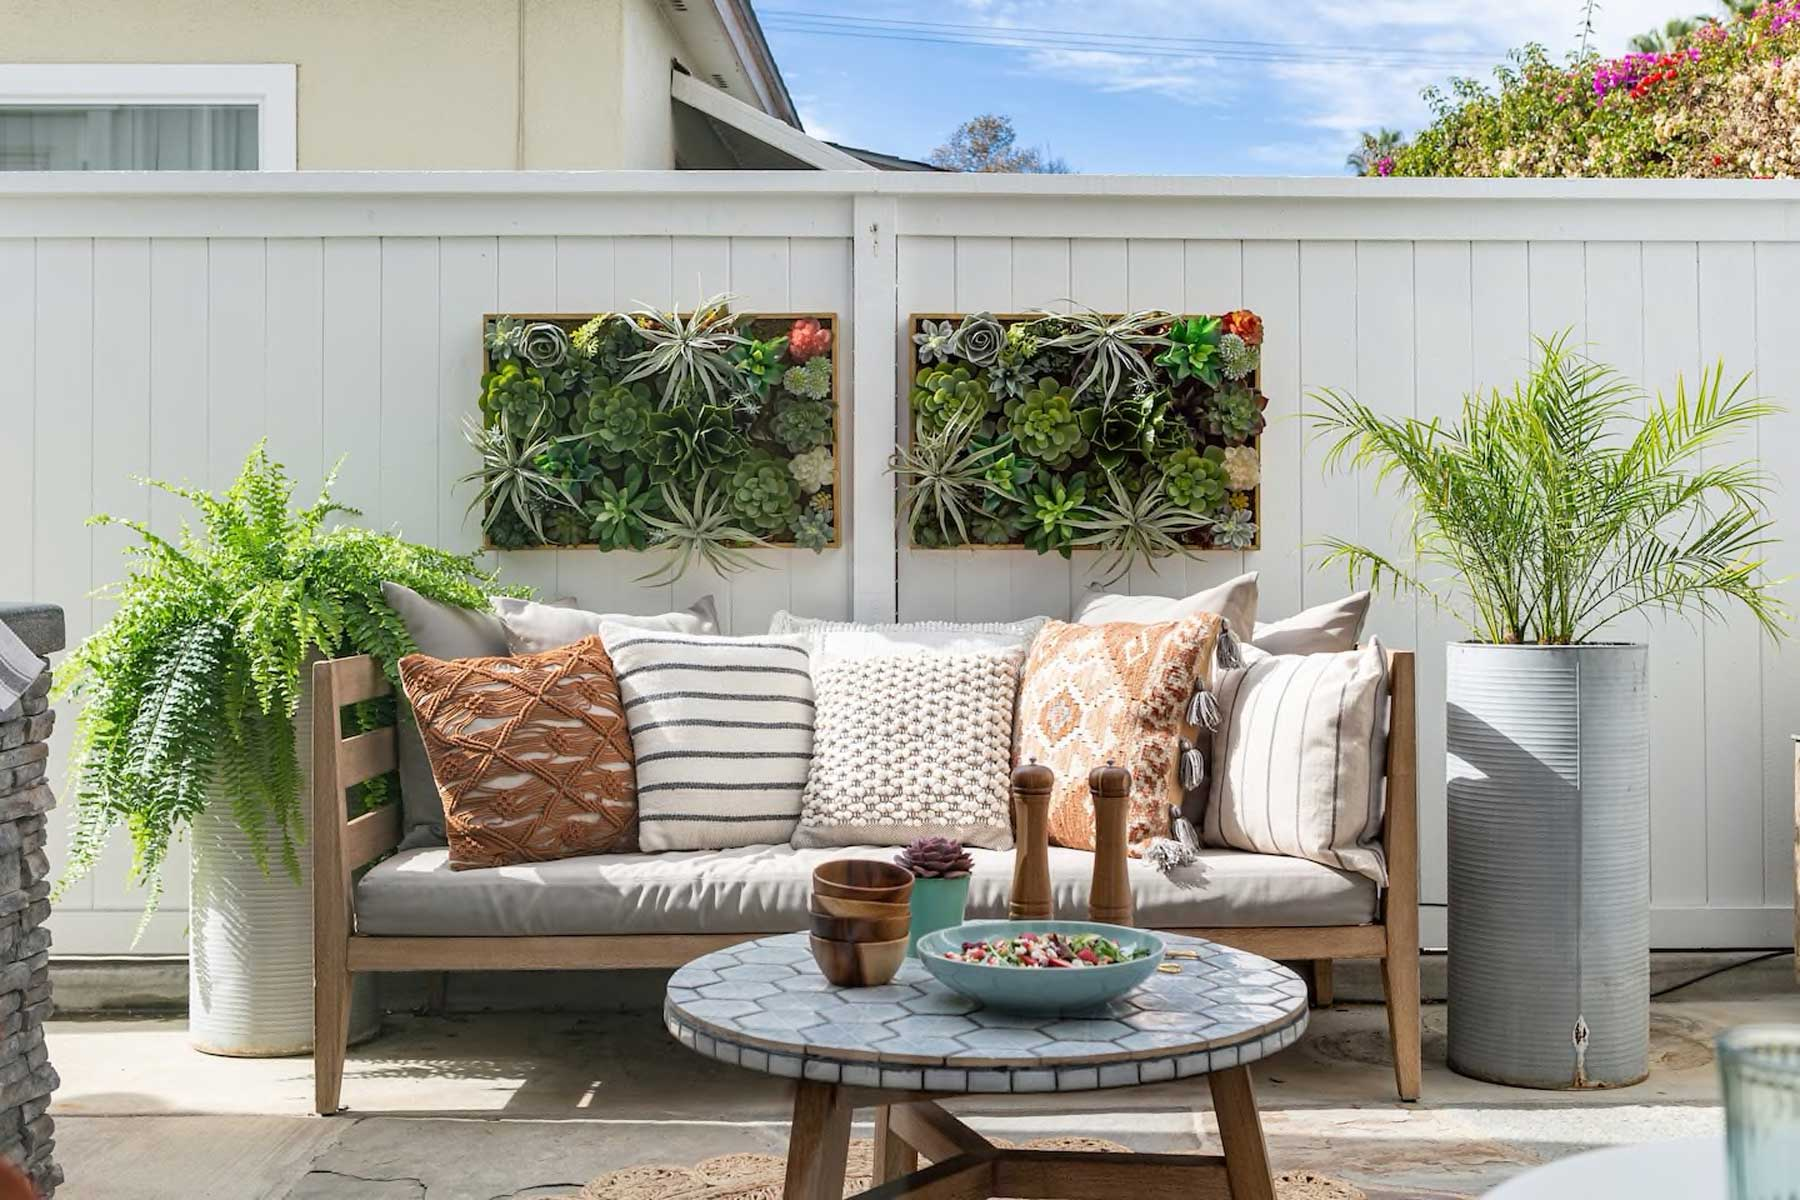 Outdoor patio of Jasmine Roth's California Home